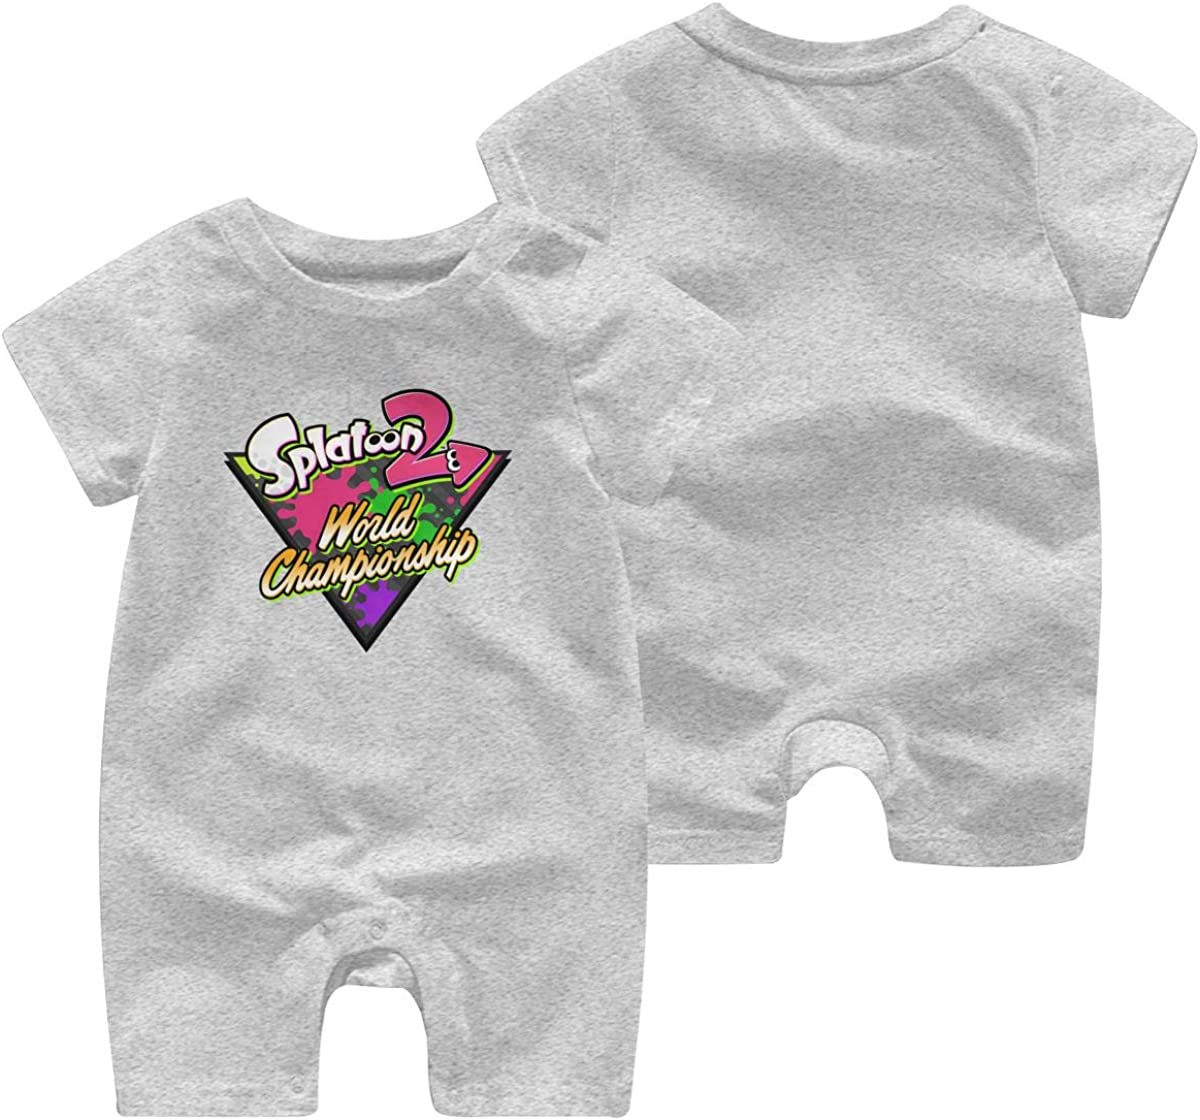 Hey May Baby Boys Girls Shorts Sleeve Romper Splatoon 2 Outfit Creepers Bodysuit Clothes Jumpsuit